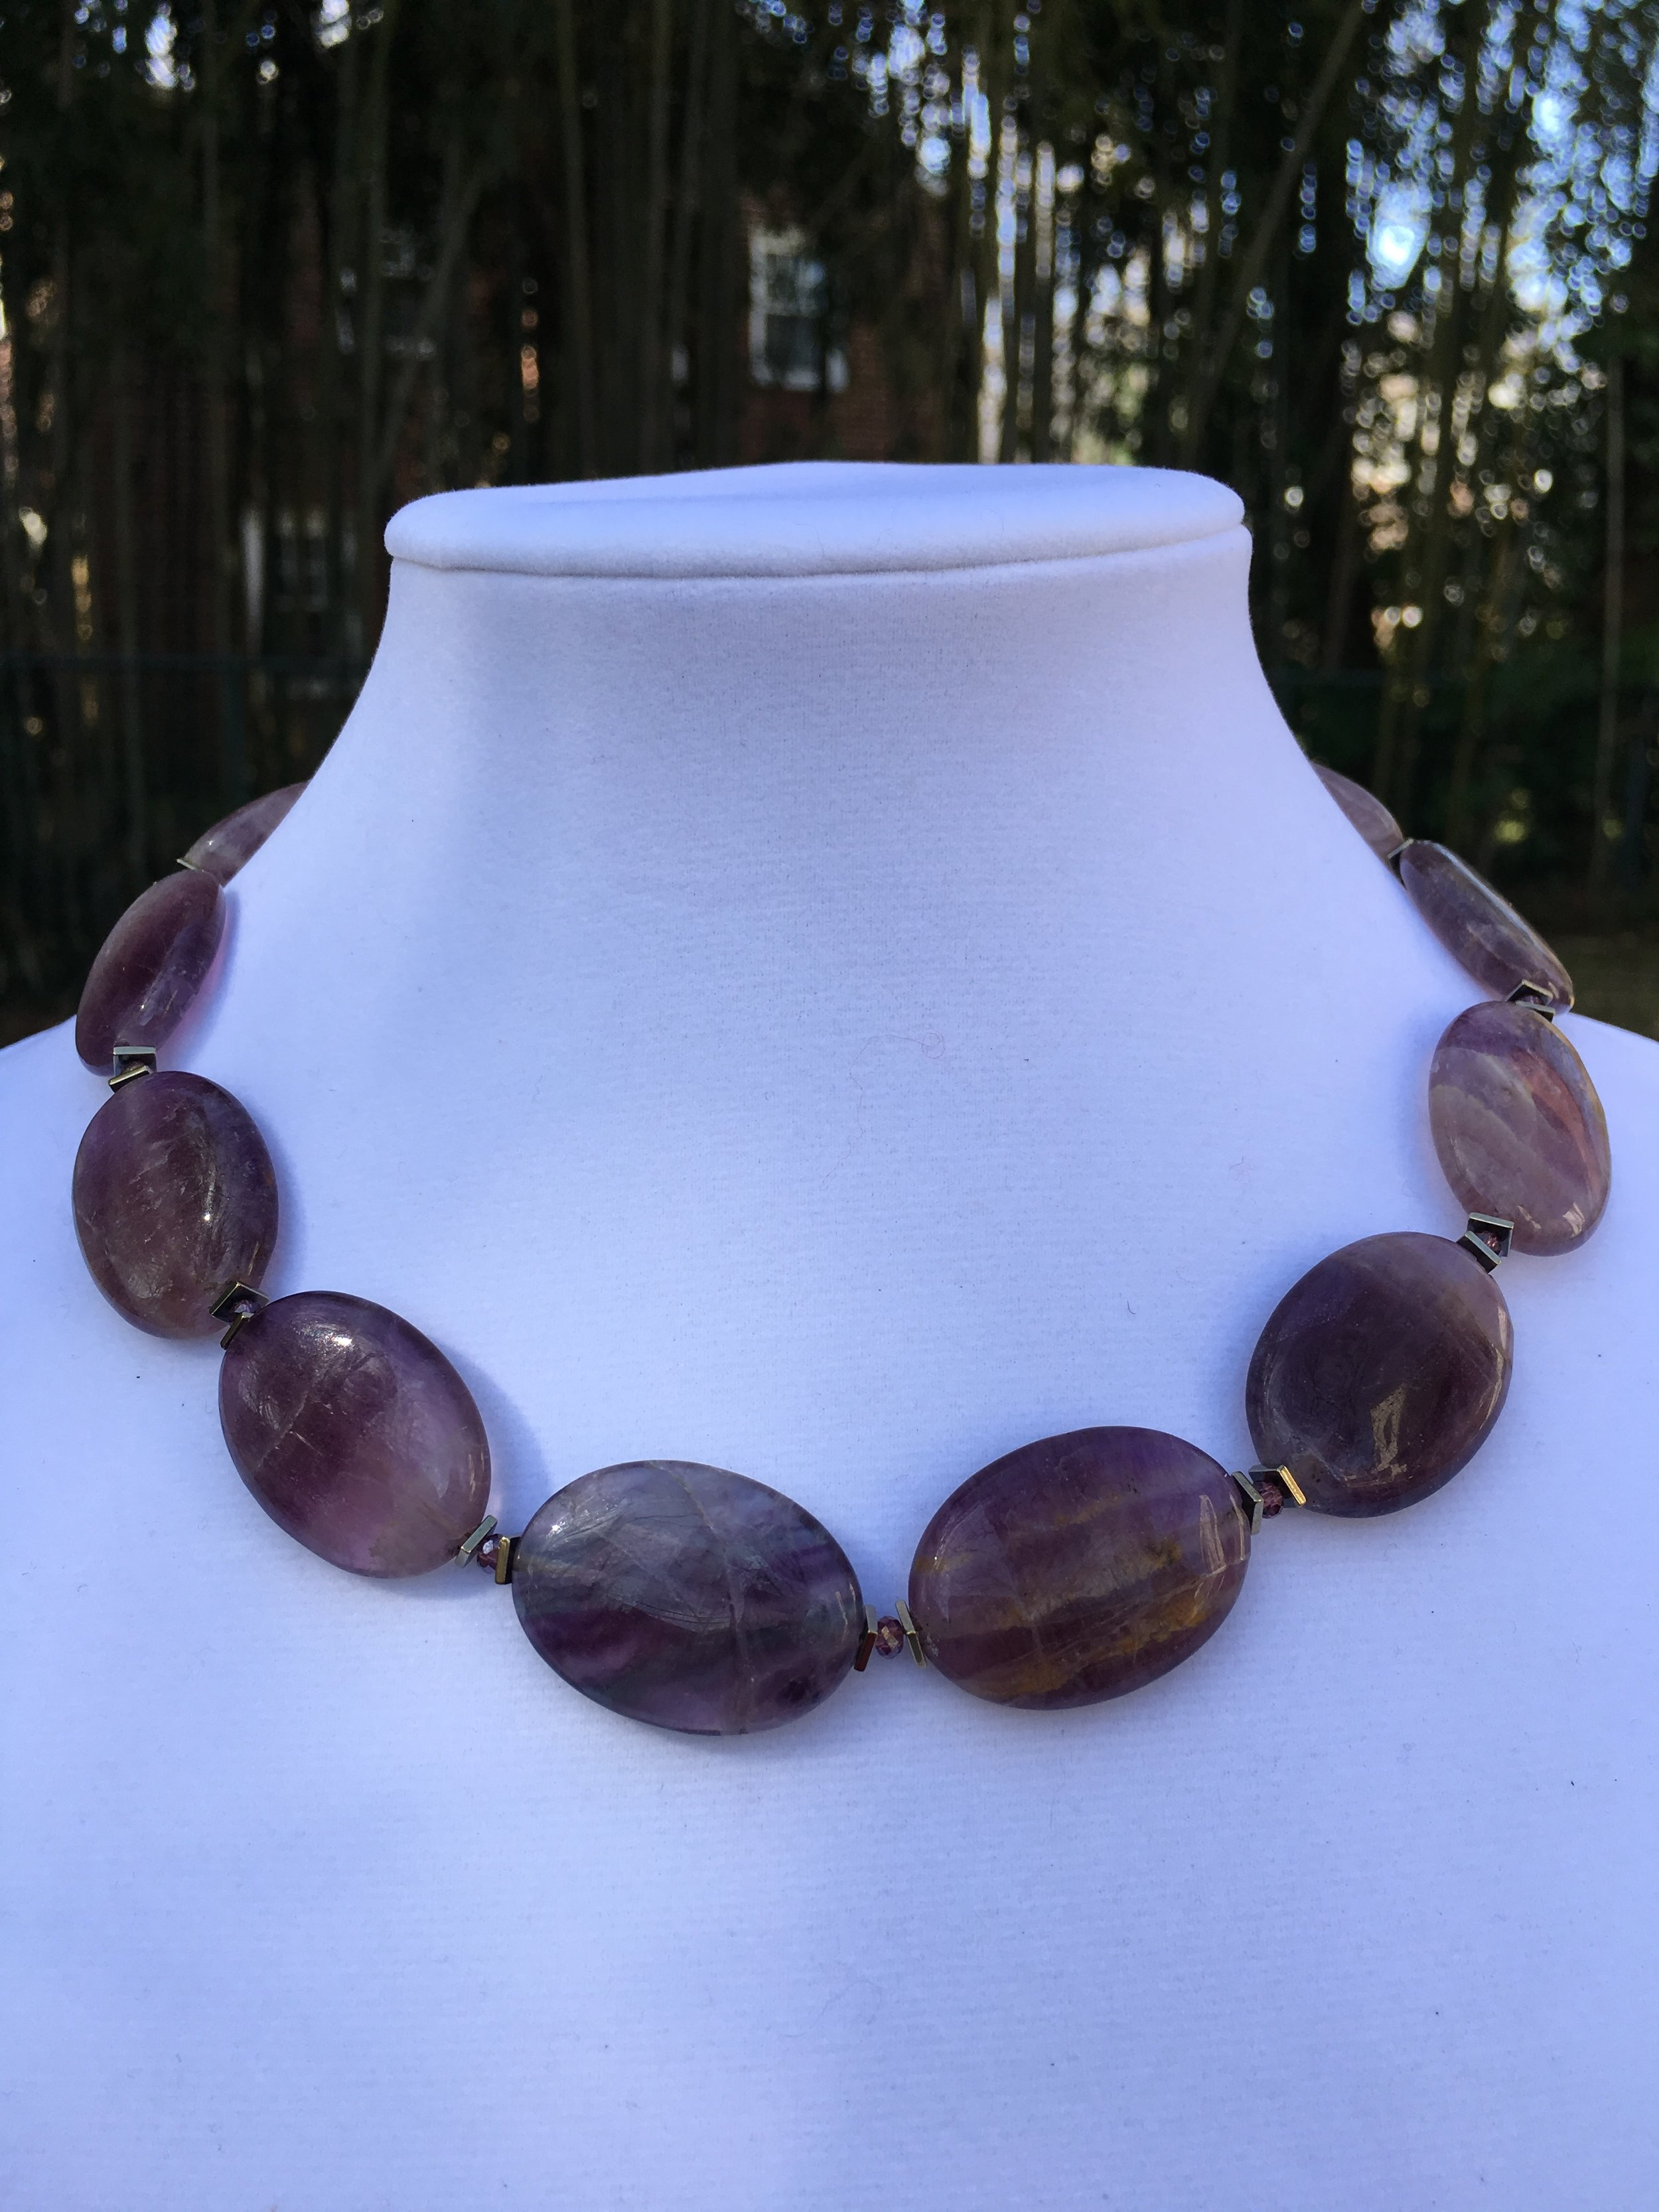 Fluorite NECKLACE  23 x 30 mm smooth oval fluorite beads. Gold filled clasp. 18 in. $180